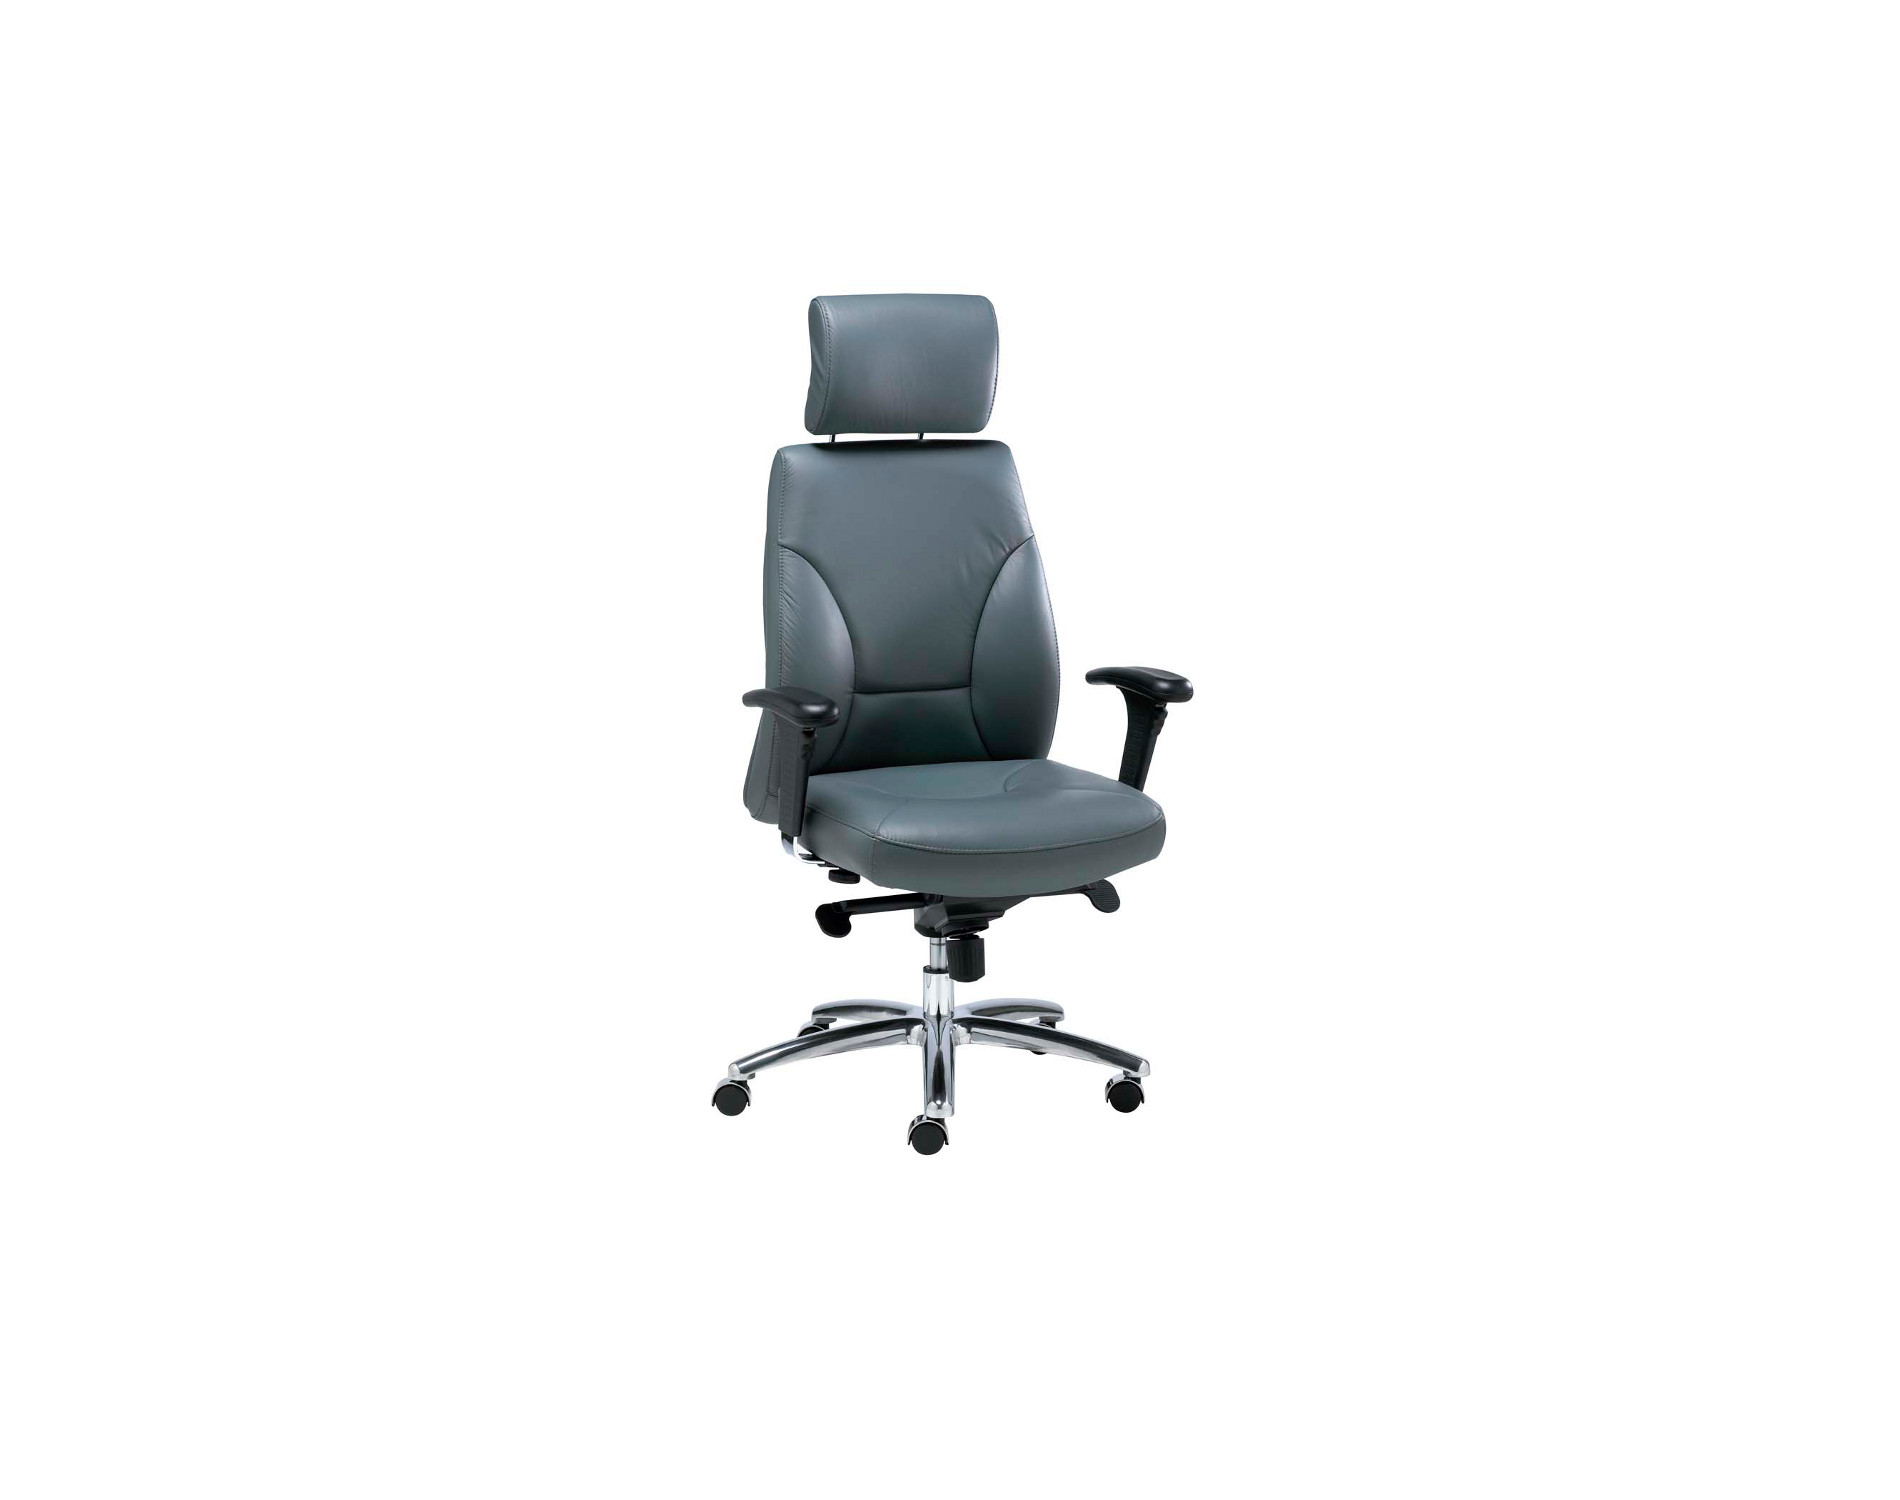 high back chairs with arms vinyl mesh fabric for sling leather boardroom chair - opula range professional